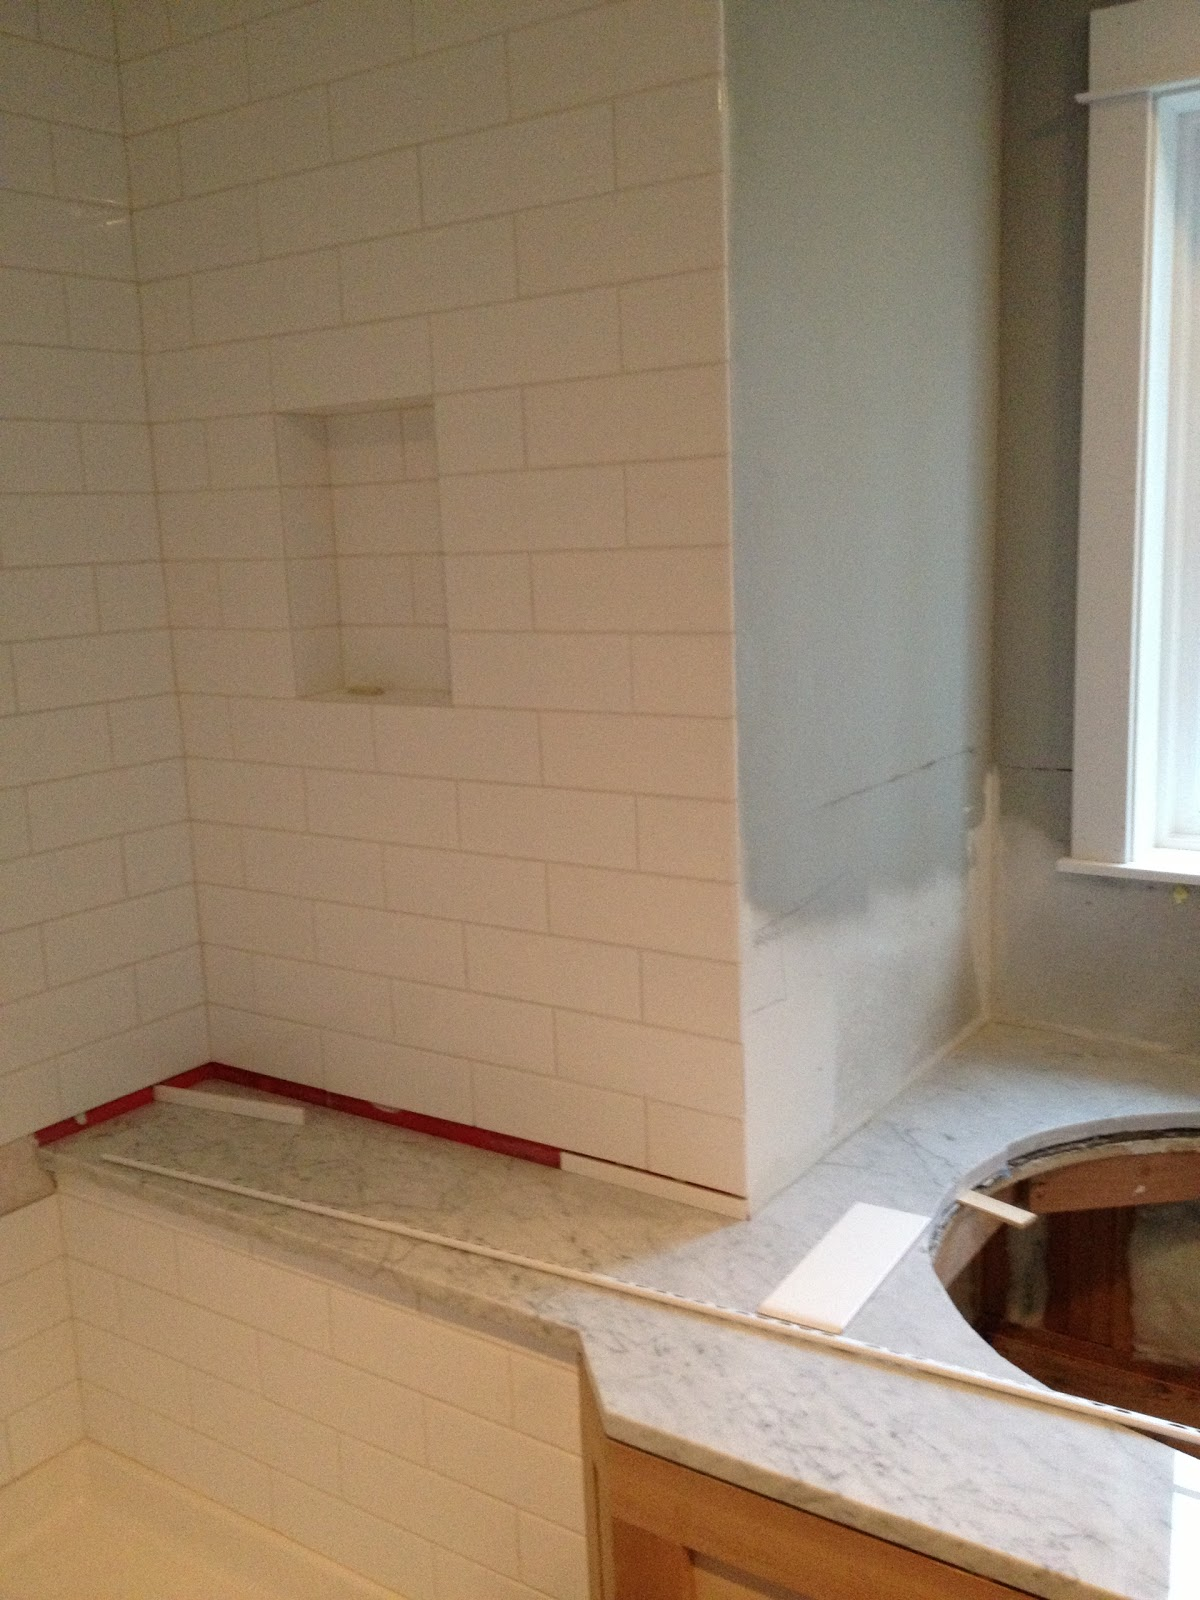 ... home, from the ground up: Progress photos - bathrooms and laundry room